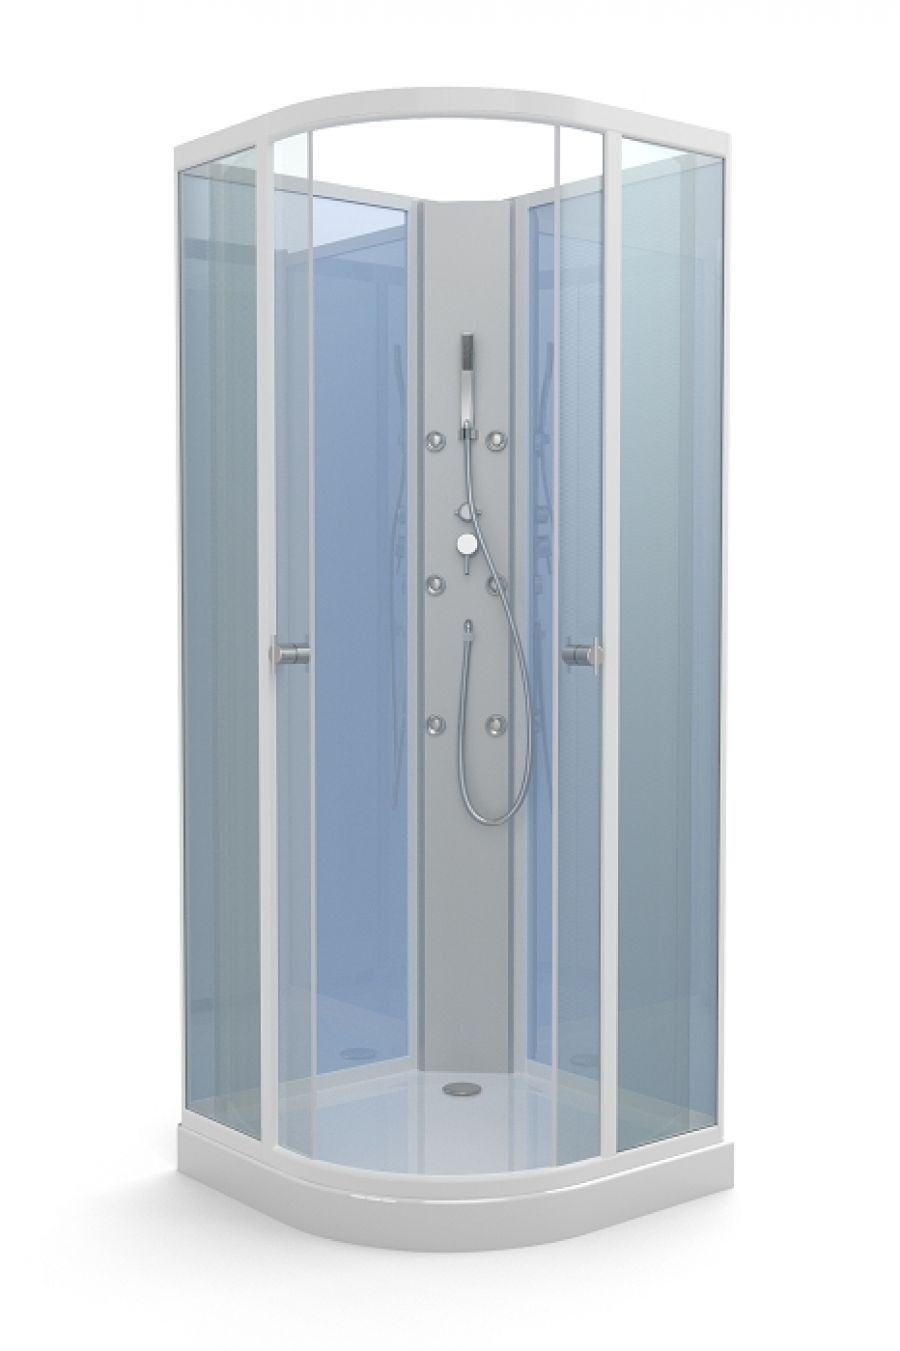 cabine de douche 1 4 rond blue yoda 85x85 meuble de salle de bain douche. Black Bedroom Furniture Sets. Home Design Ideas